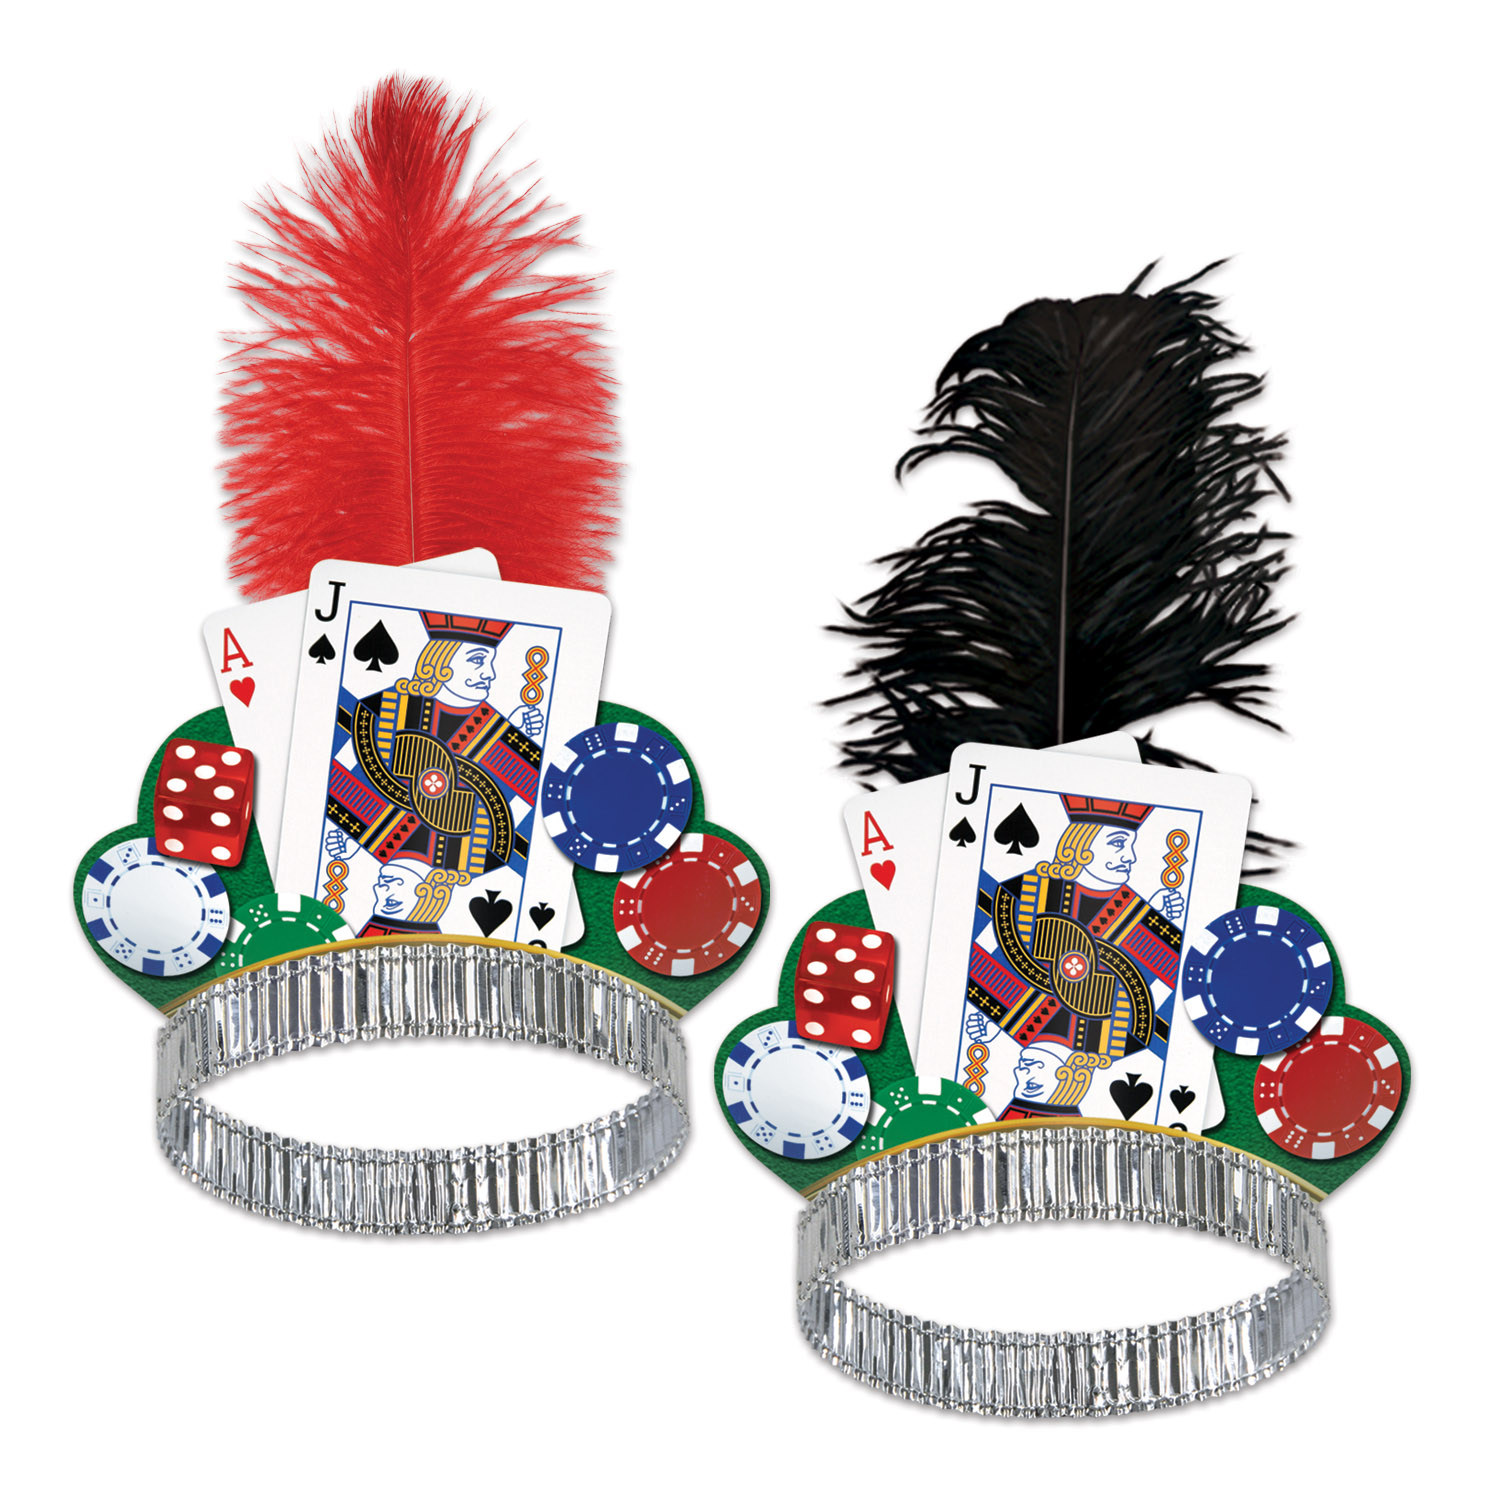 Casino Night Tiaras (Pack of 50) Casino Night Tiaras, party favor, casino, new years eve, wholesale, inexpensive, bulk